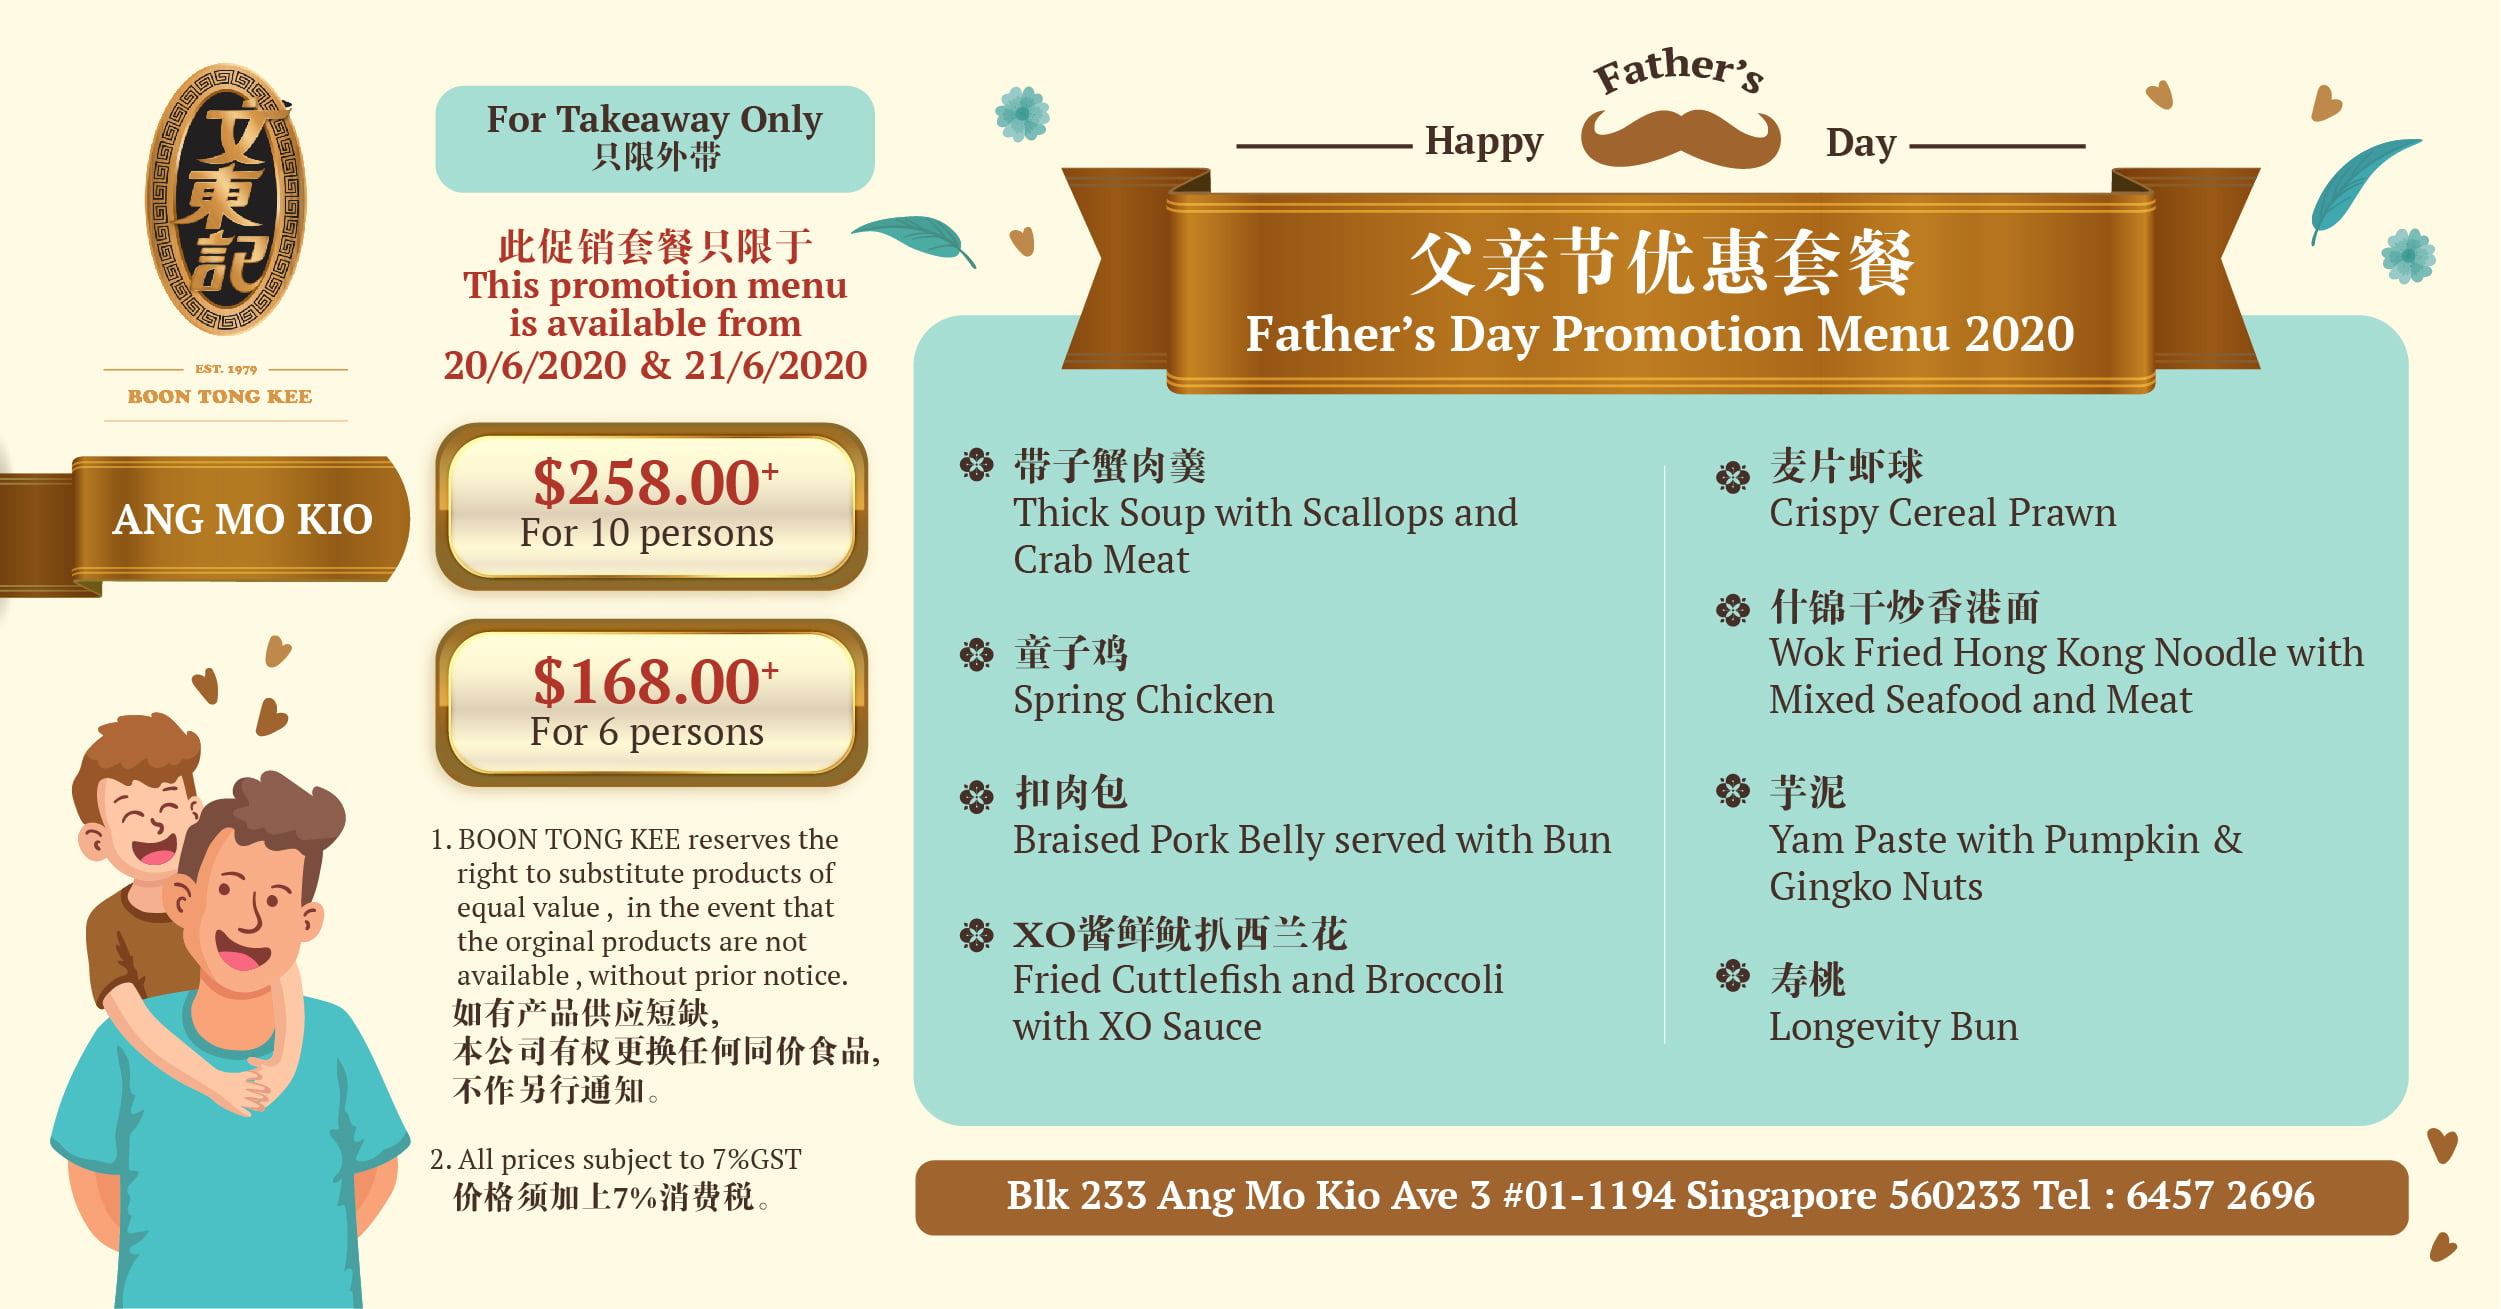 Father's Day Promotion Menu 2020 ( For take away only)